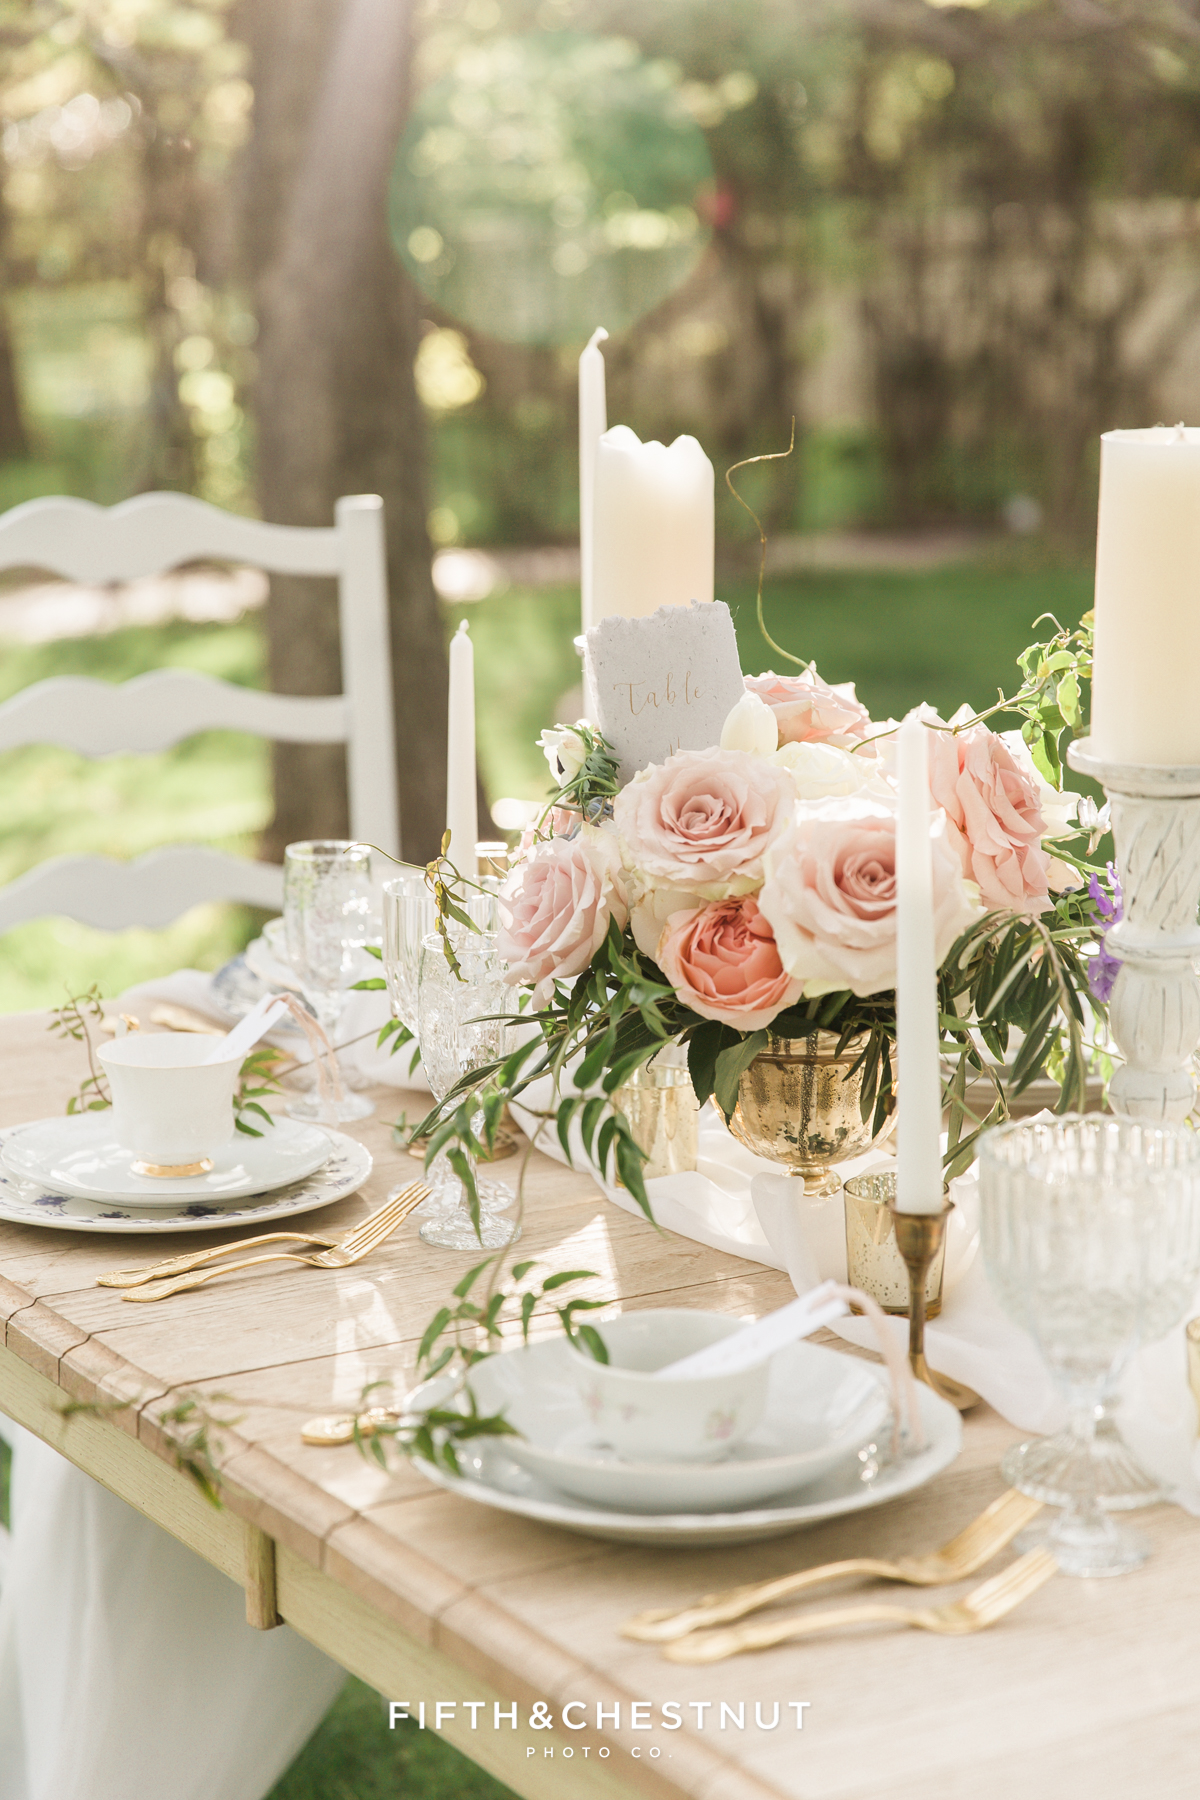 lovely tablescape details at a Dusty Blue Private Estate Country French Wedding Styled Shoot